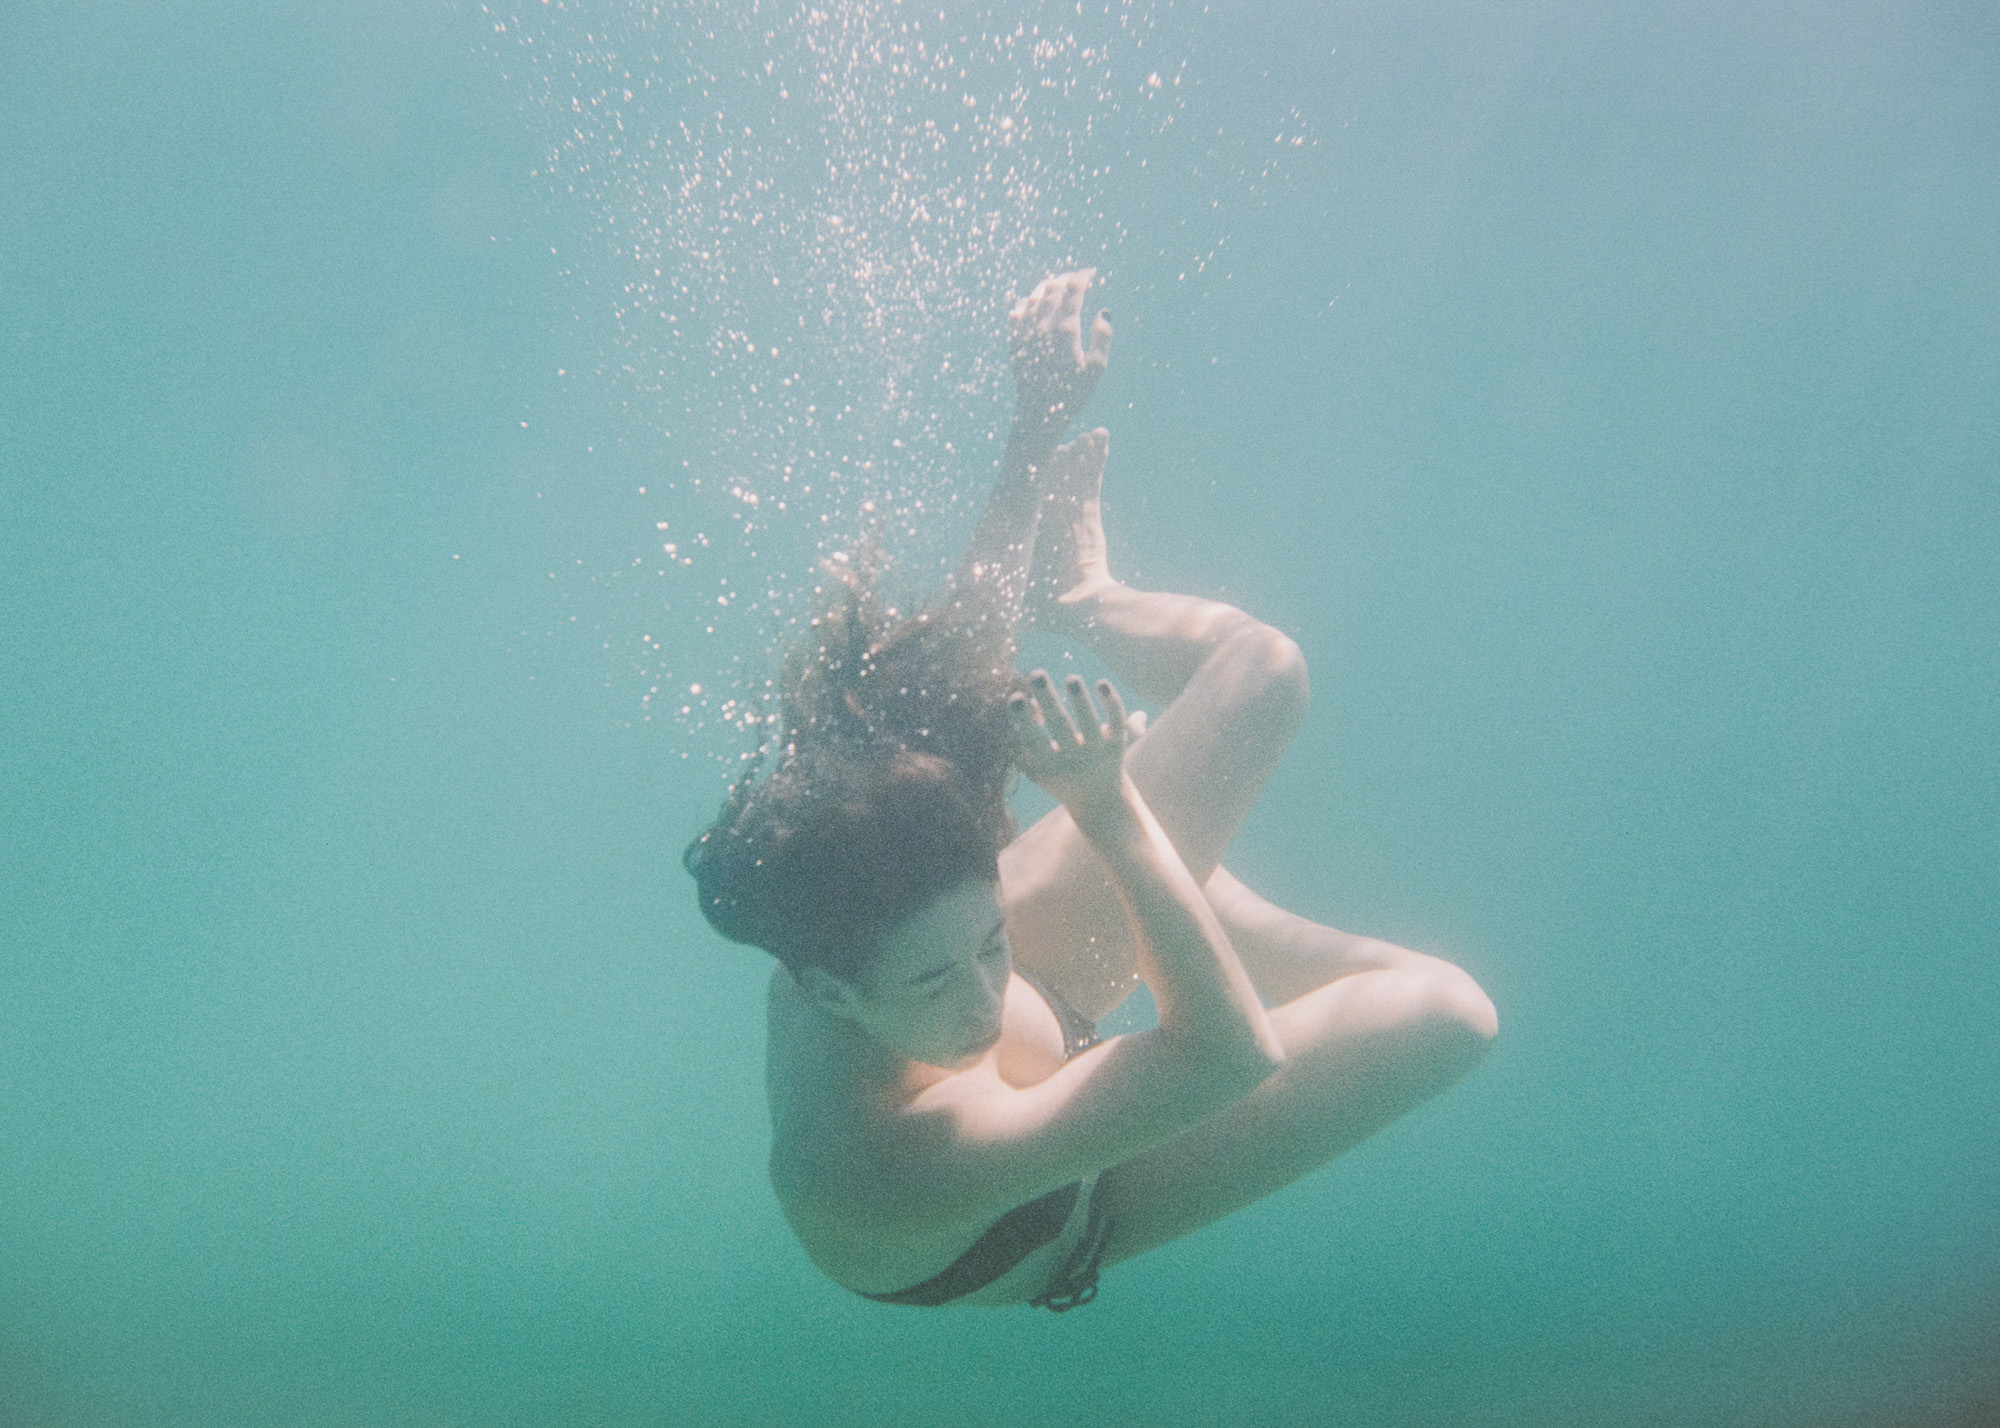 """It's about your other senses. Feeling the water + listening to your thoughts."" - — Rosie Gallen"